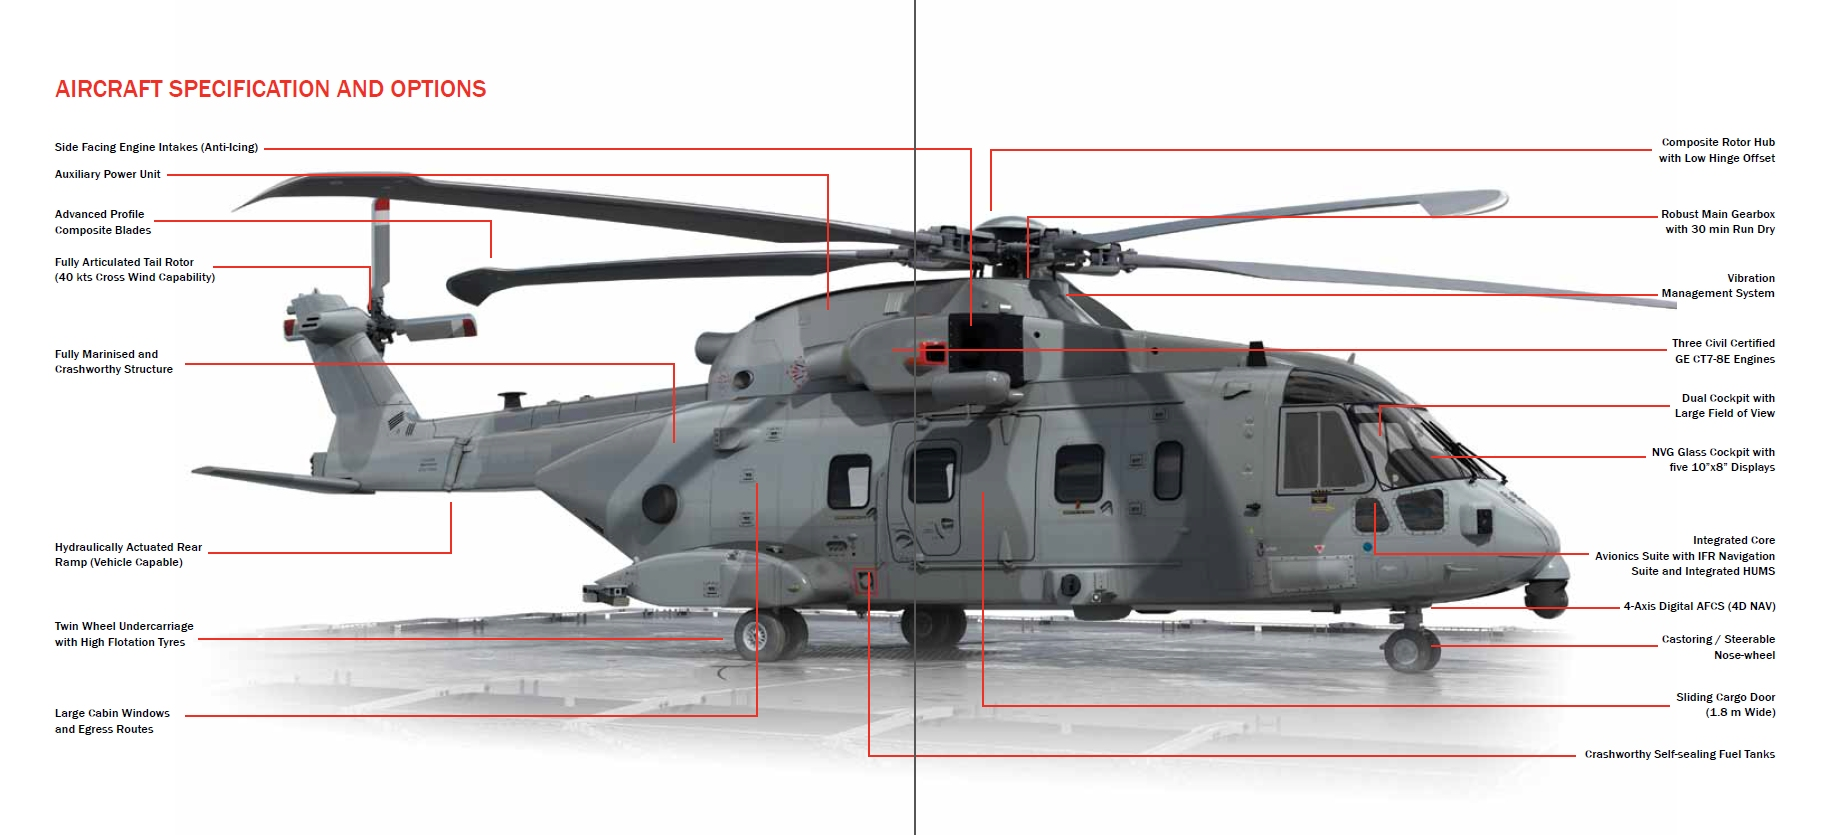 Poland Looks At Aw101 Merlin Helicopters For Search And